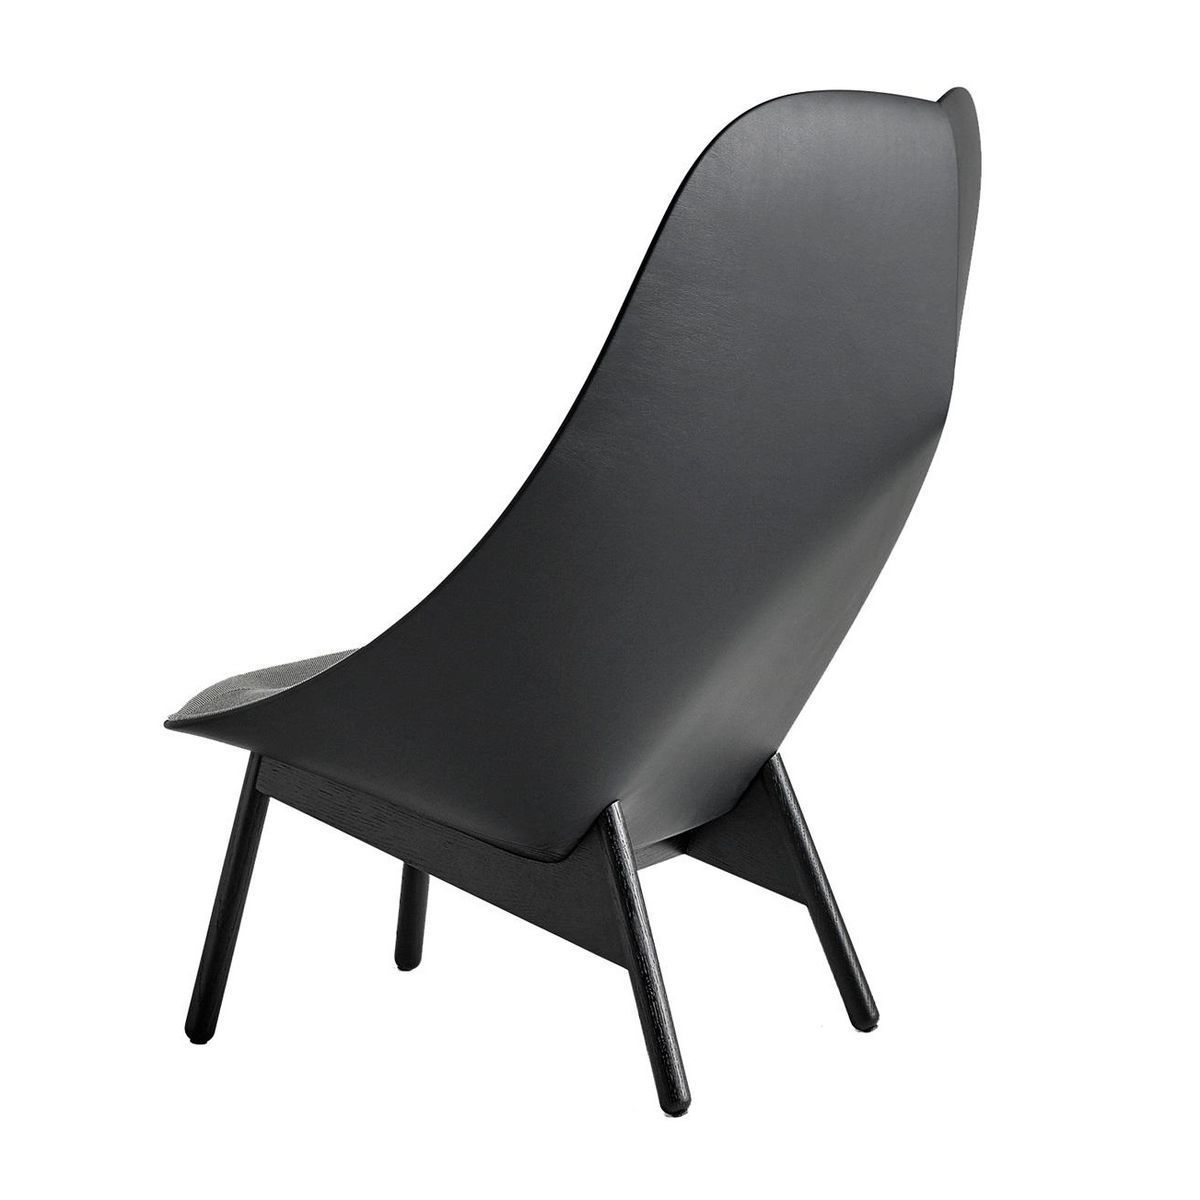 uchiwa lounge chair frame black hay. Black Bedroom Furniture Sets. Home Design Ideas